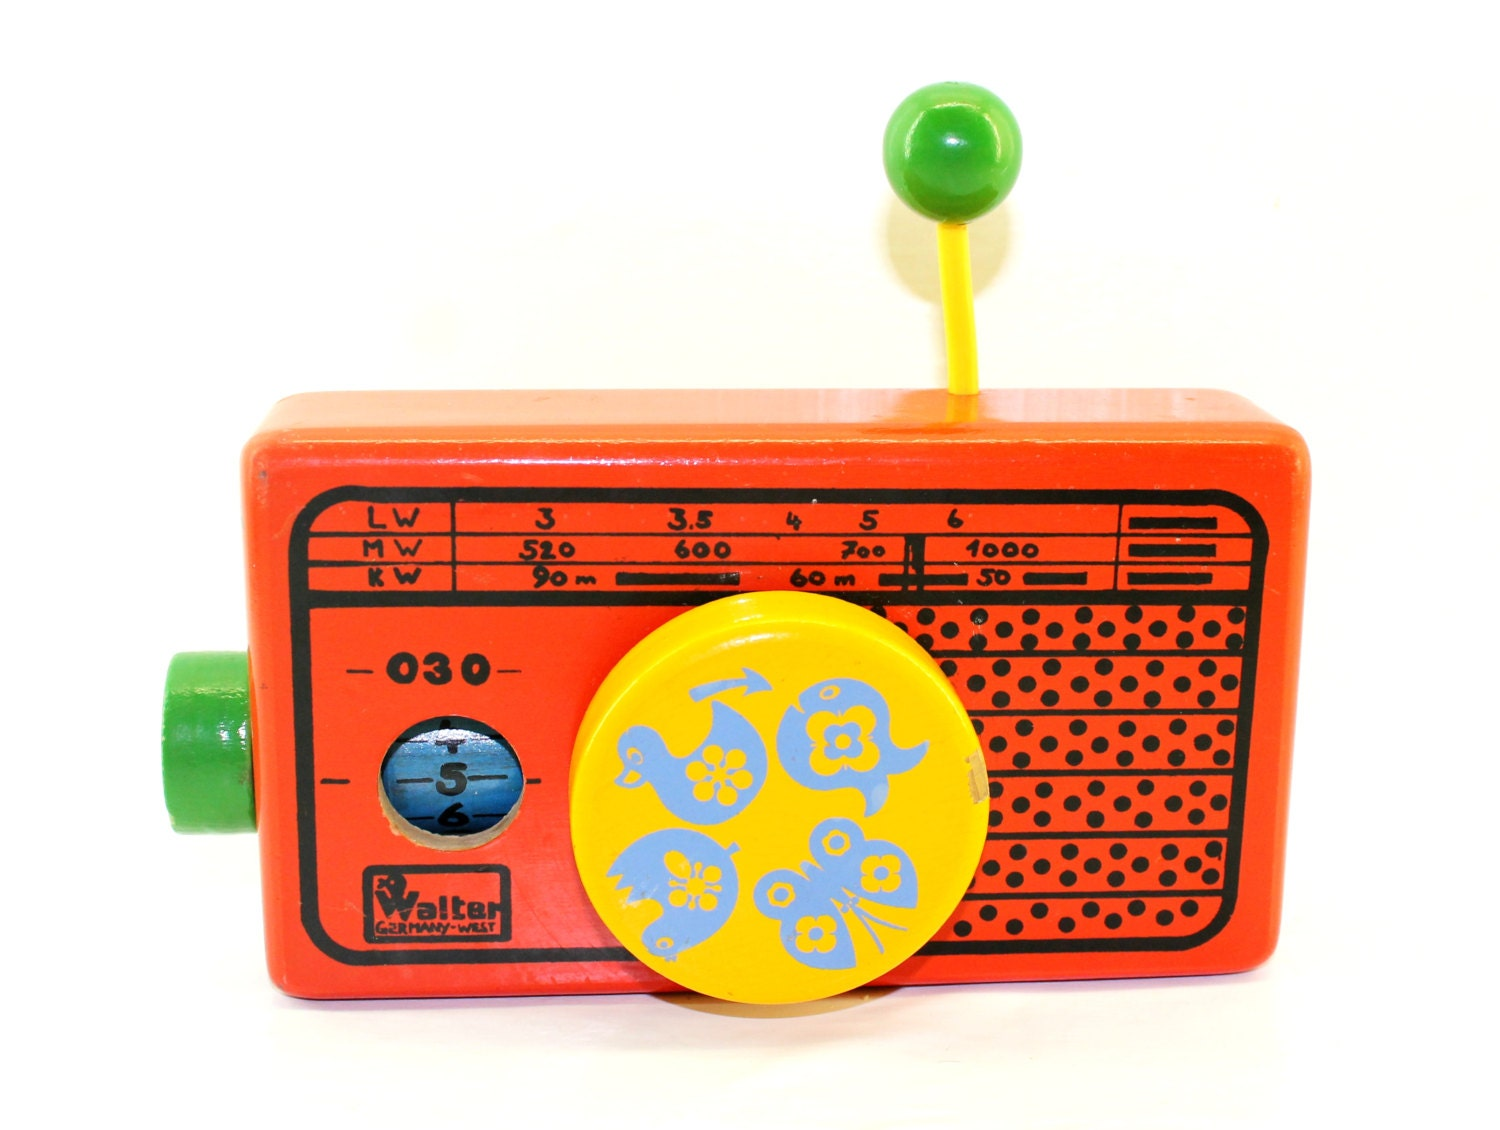 Walter West Germany Toy Radio - Wooden Musical Wind Up Radio - Rock-A-Bye Baby - HobartCollectables